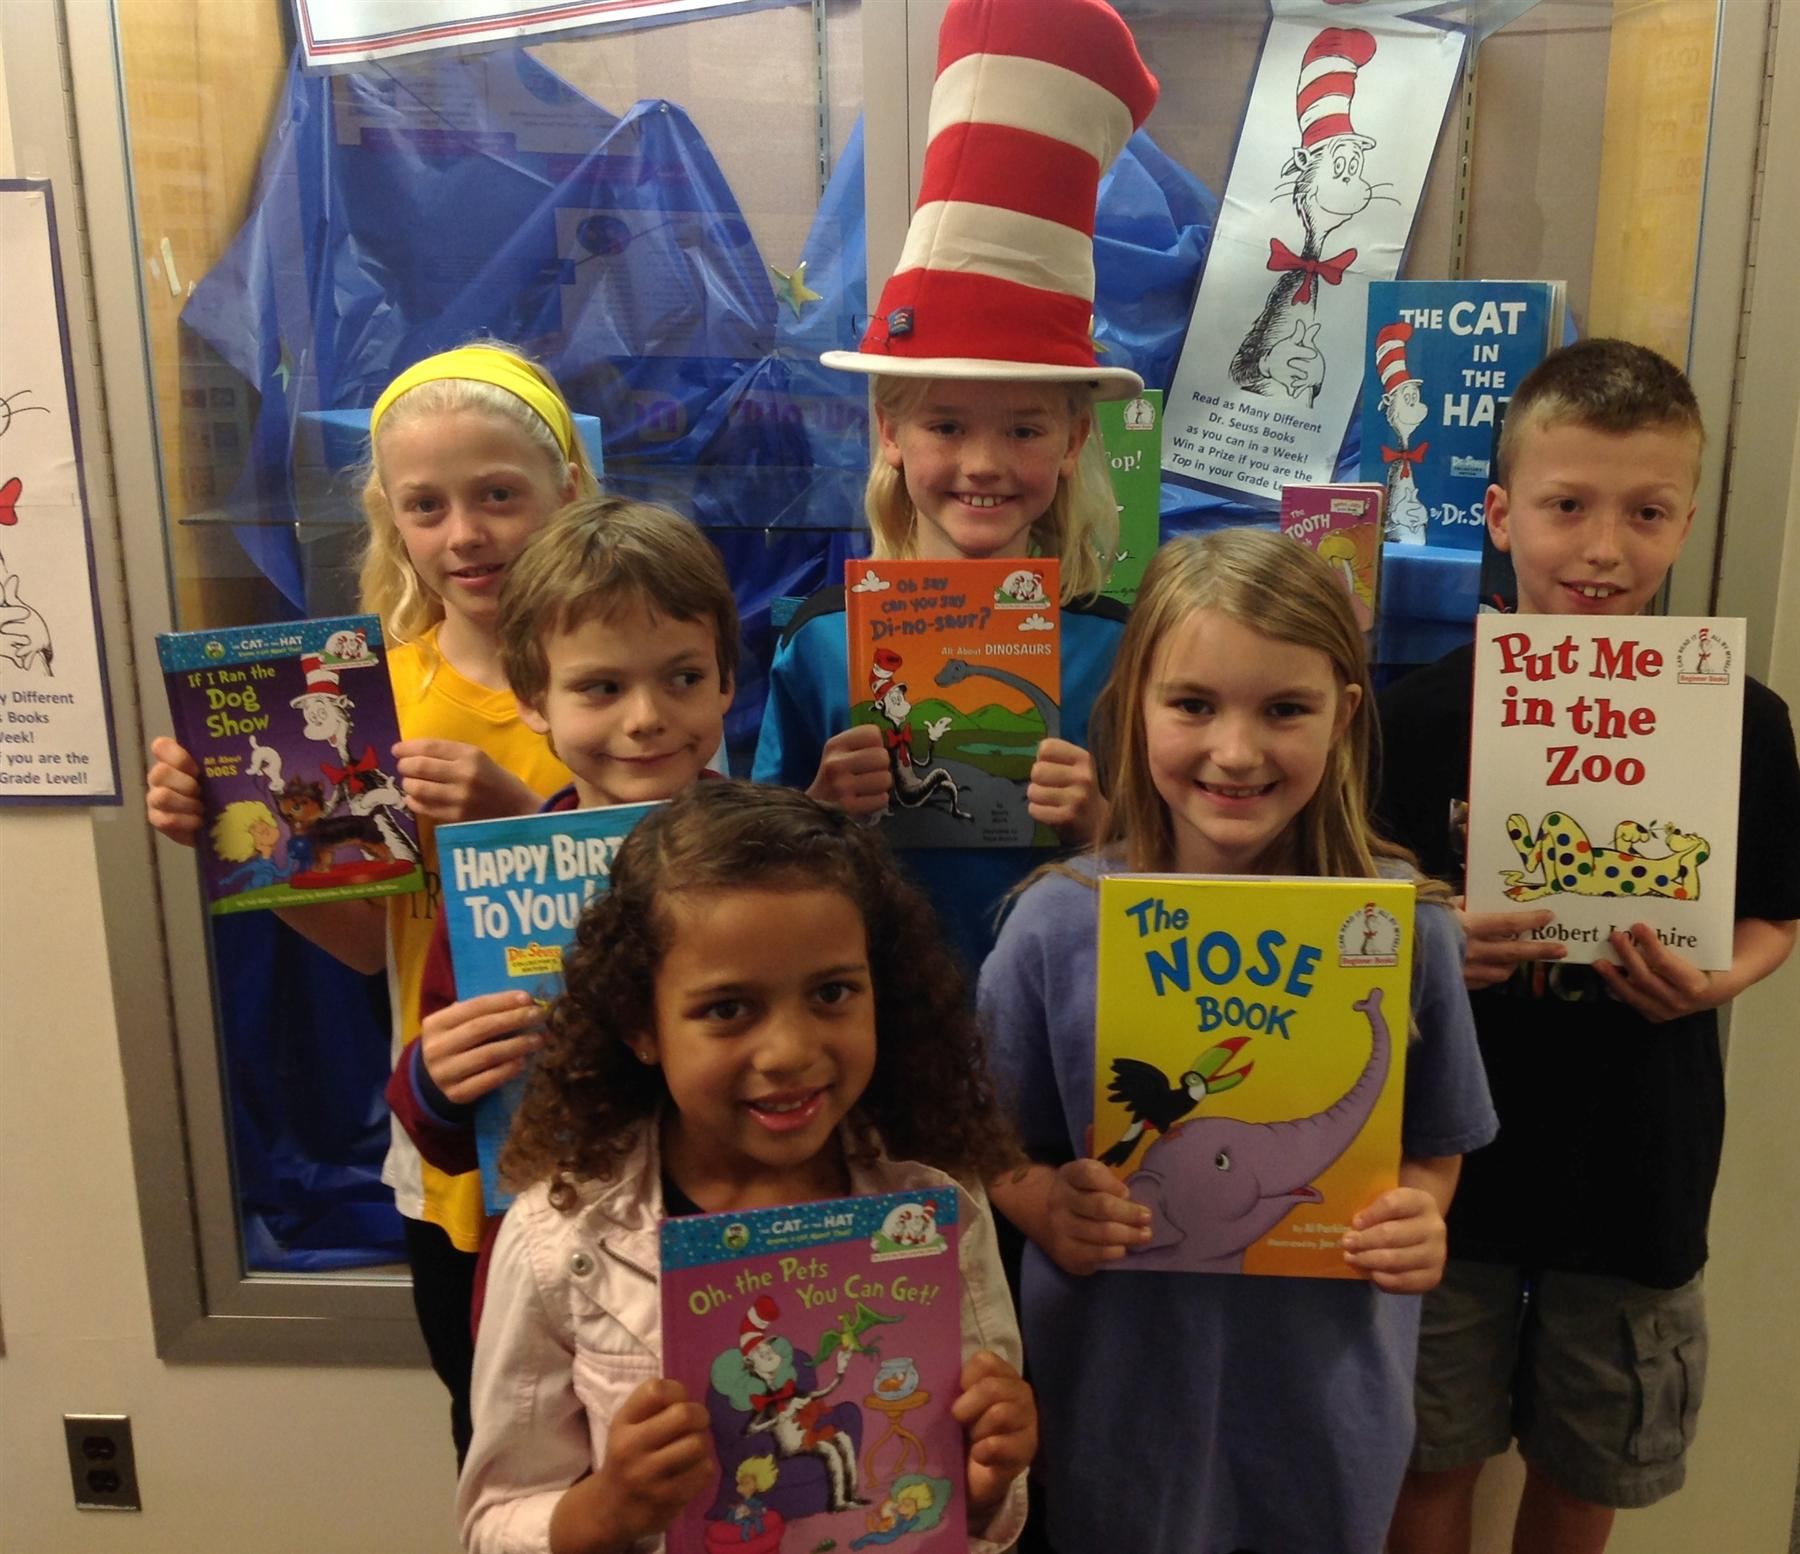 Dr. Seuss Reading Challenge Winners